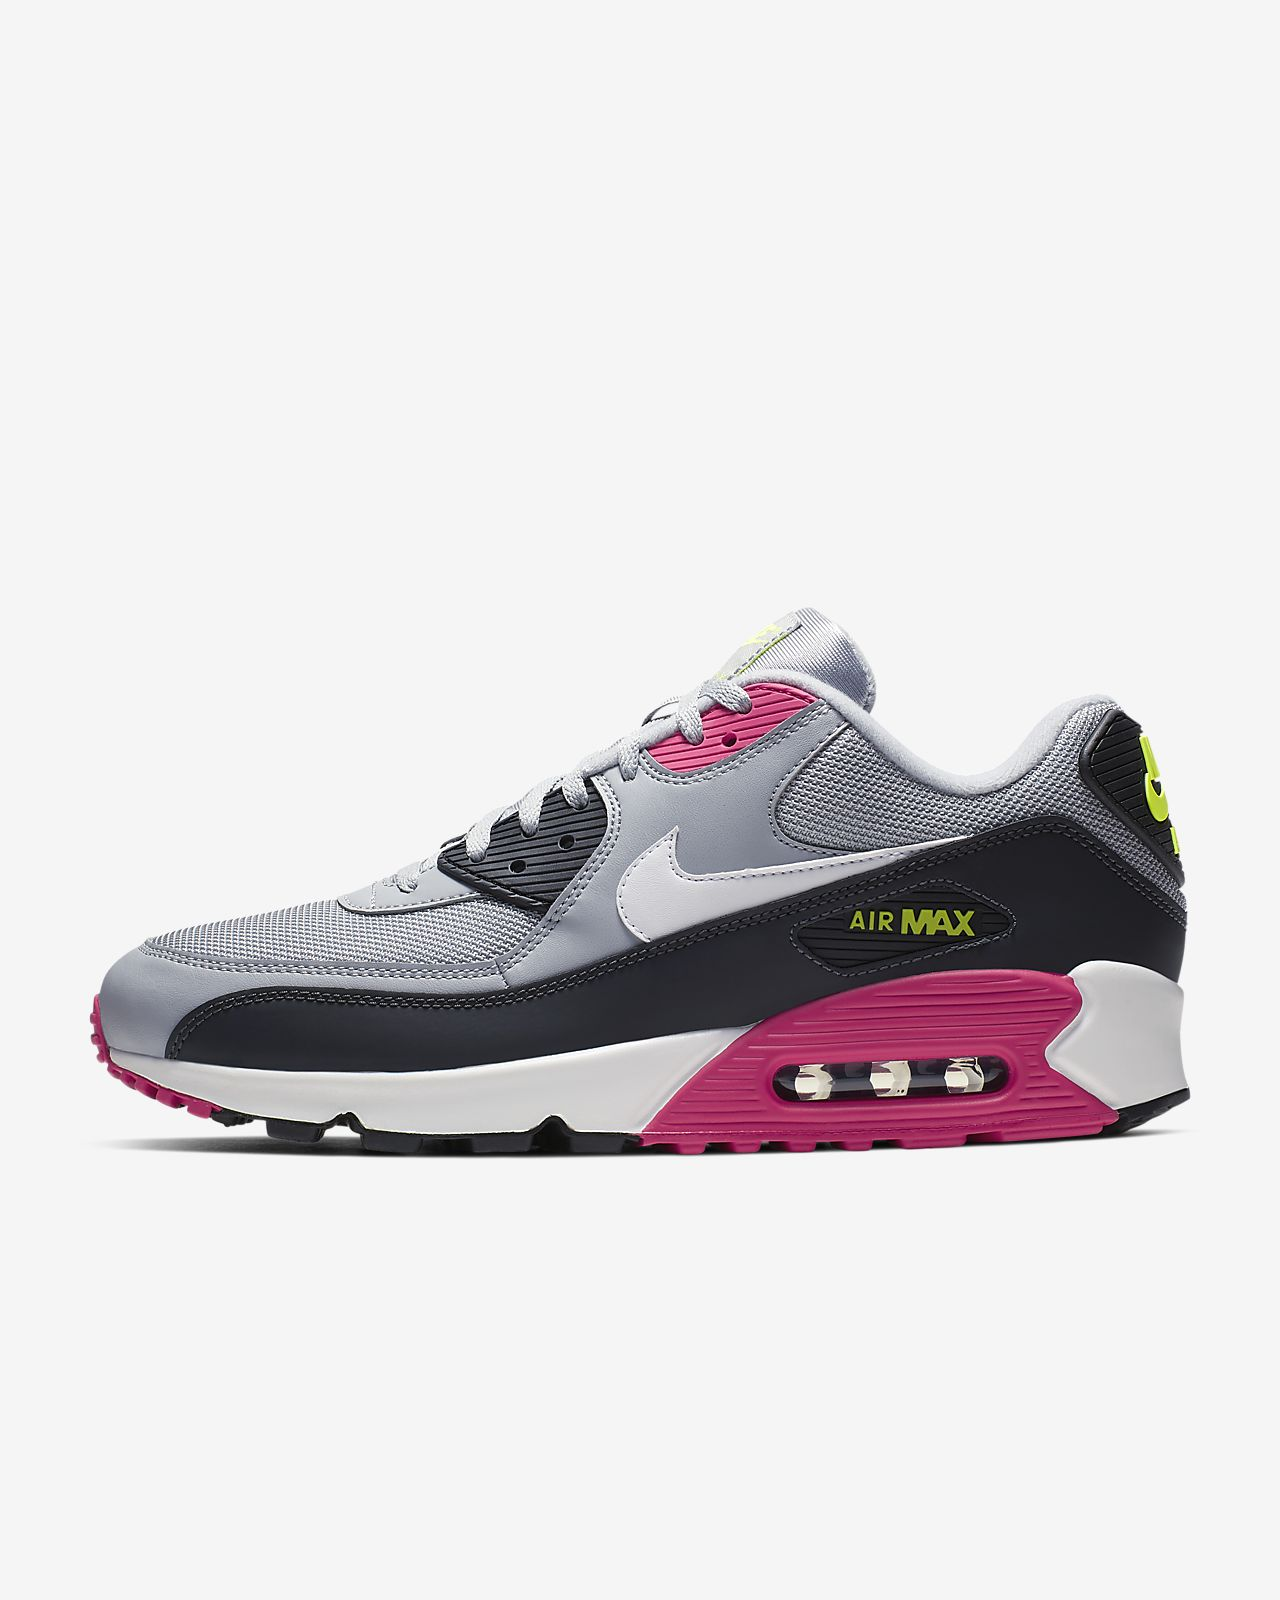 check out 392e3 28491 Nike Air Max 90 Essential Men's Shoe. Nike.com LU